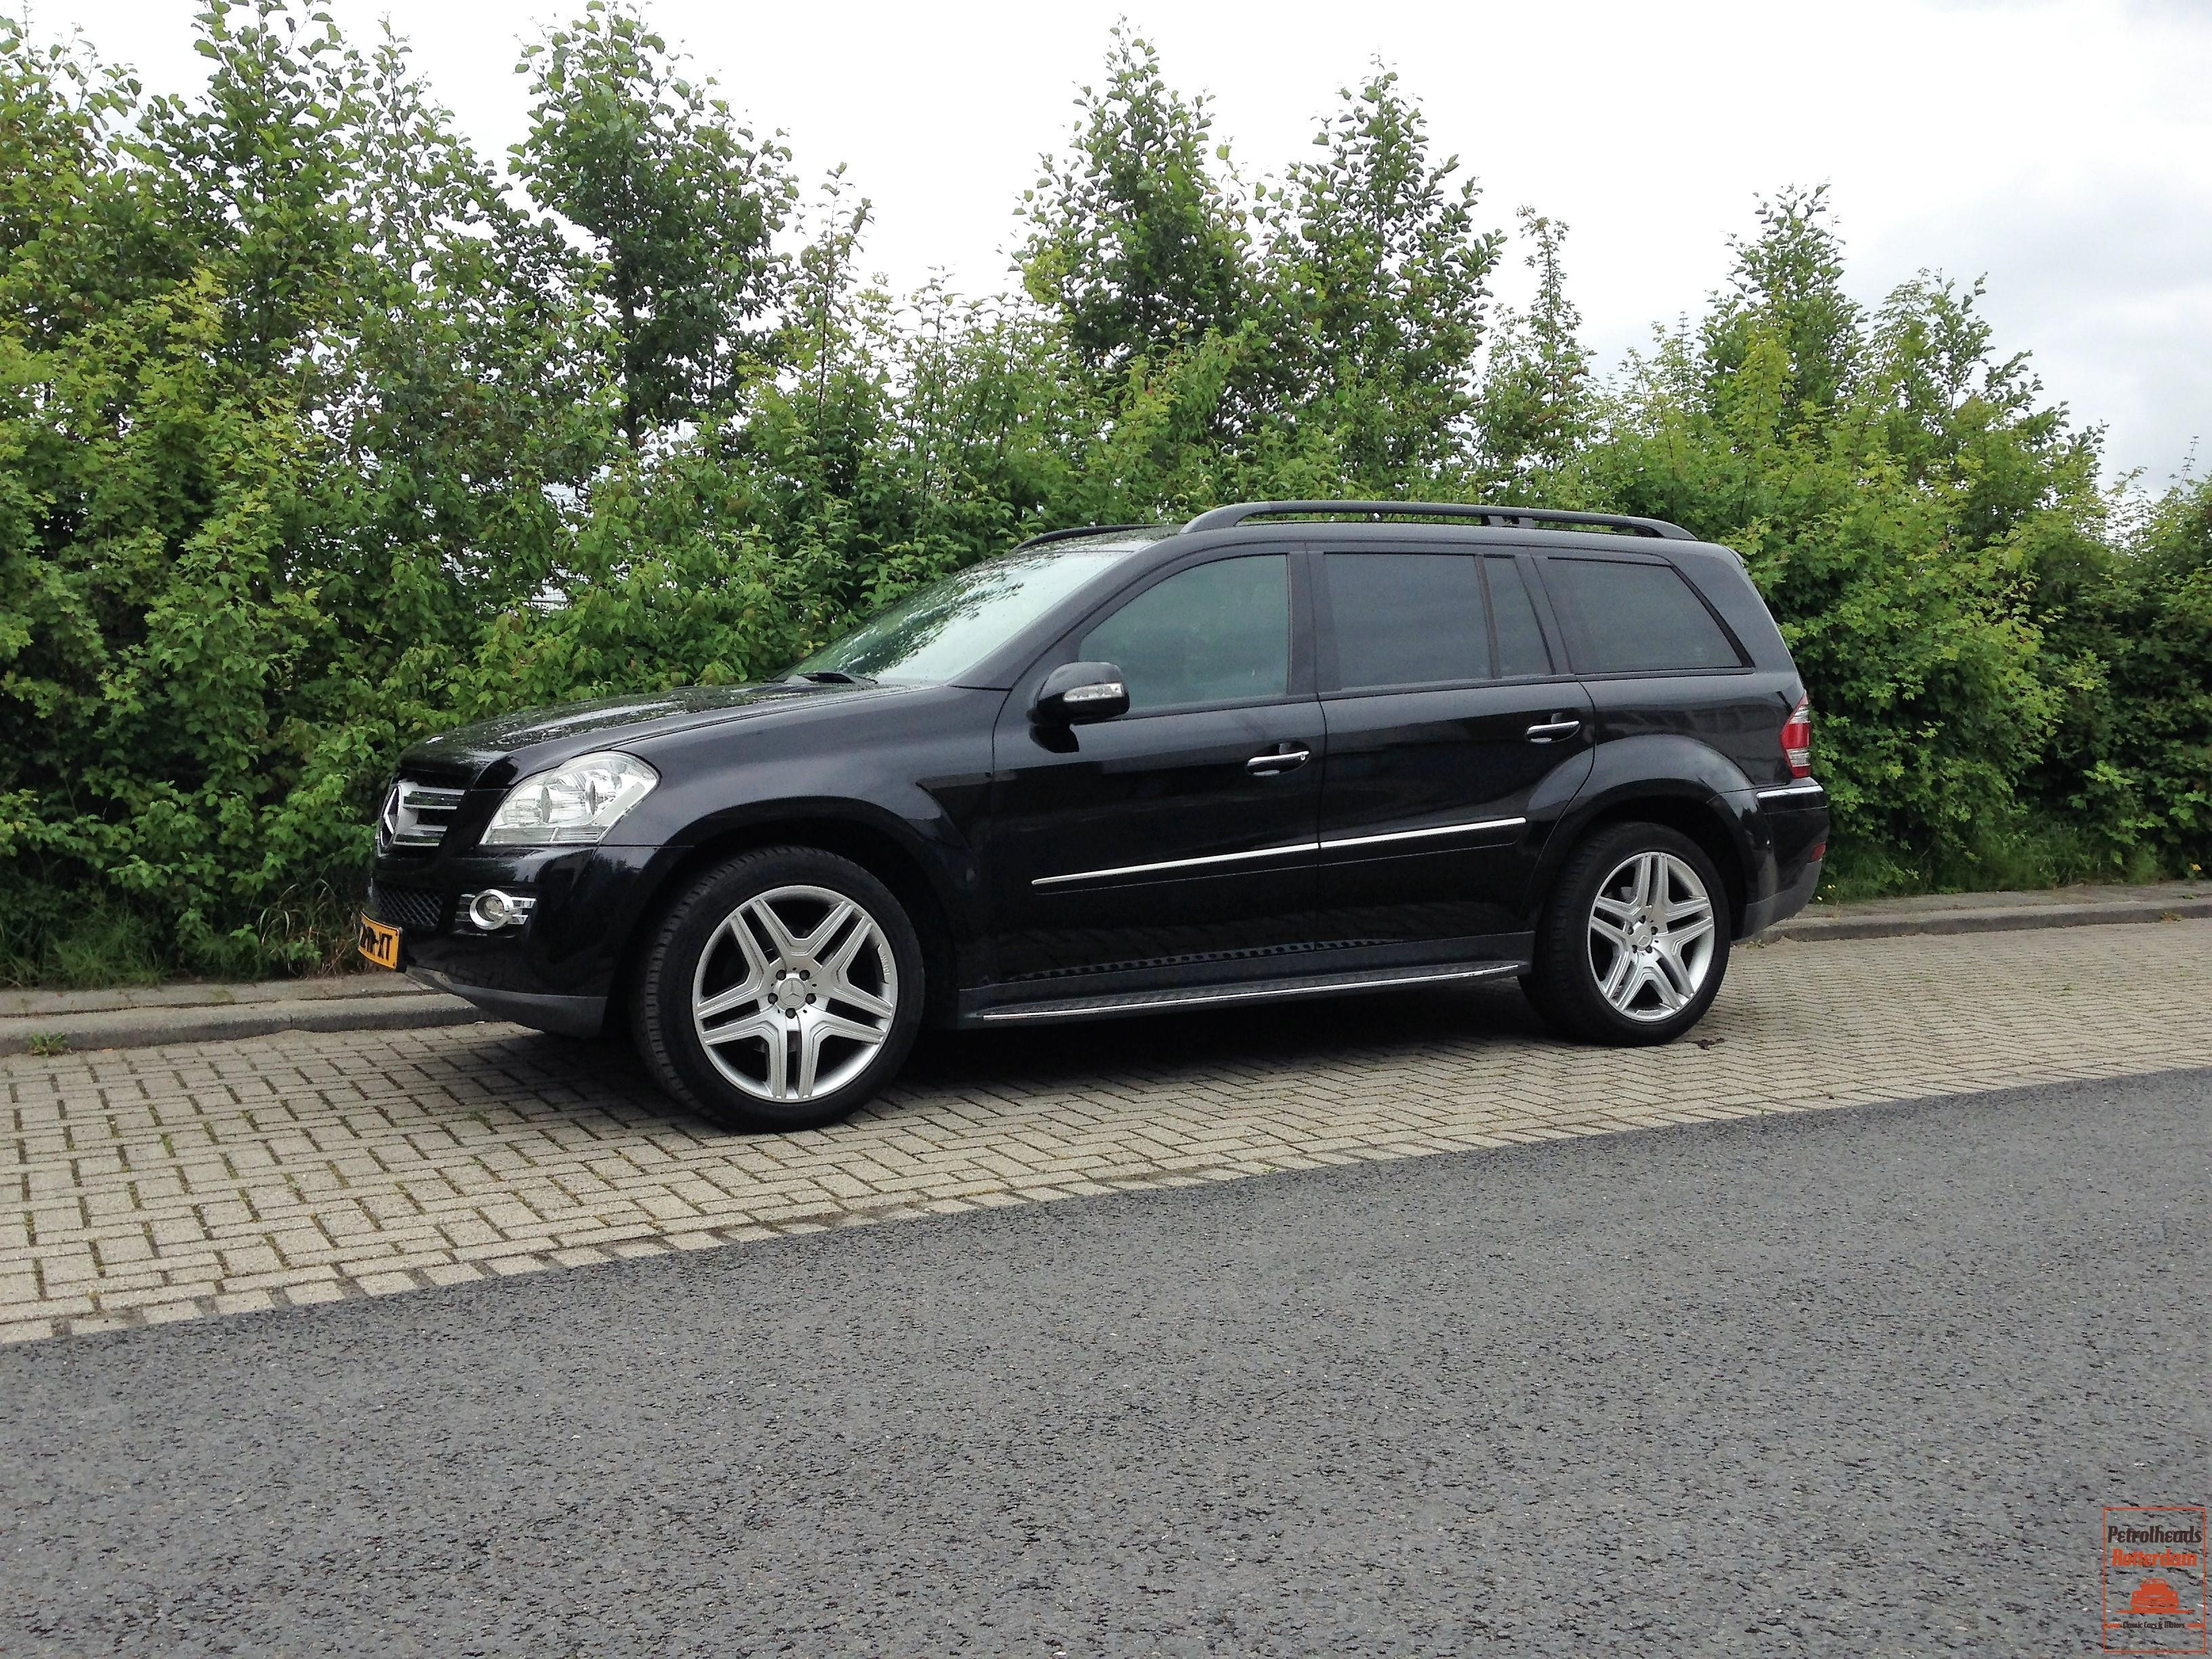 Mercedes Benz GL320 CDI 4-Matic // 2007 // Front side